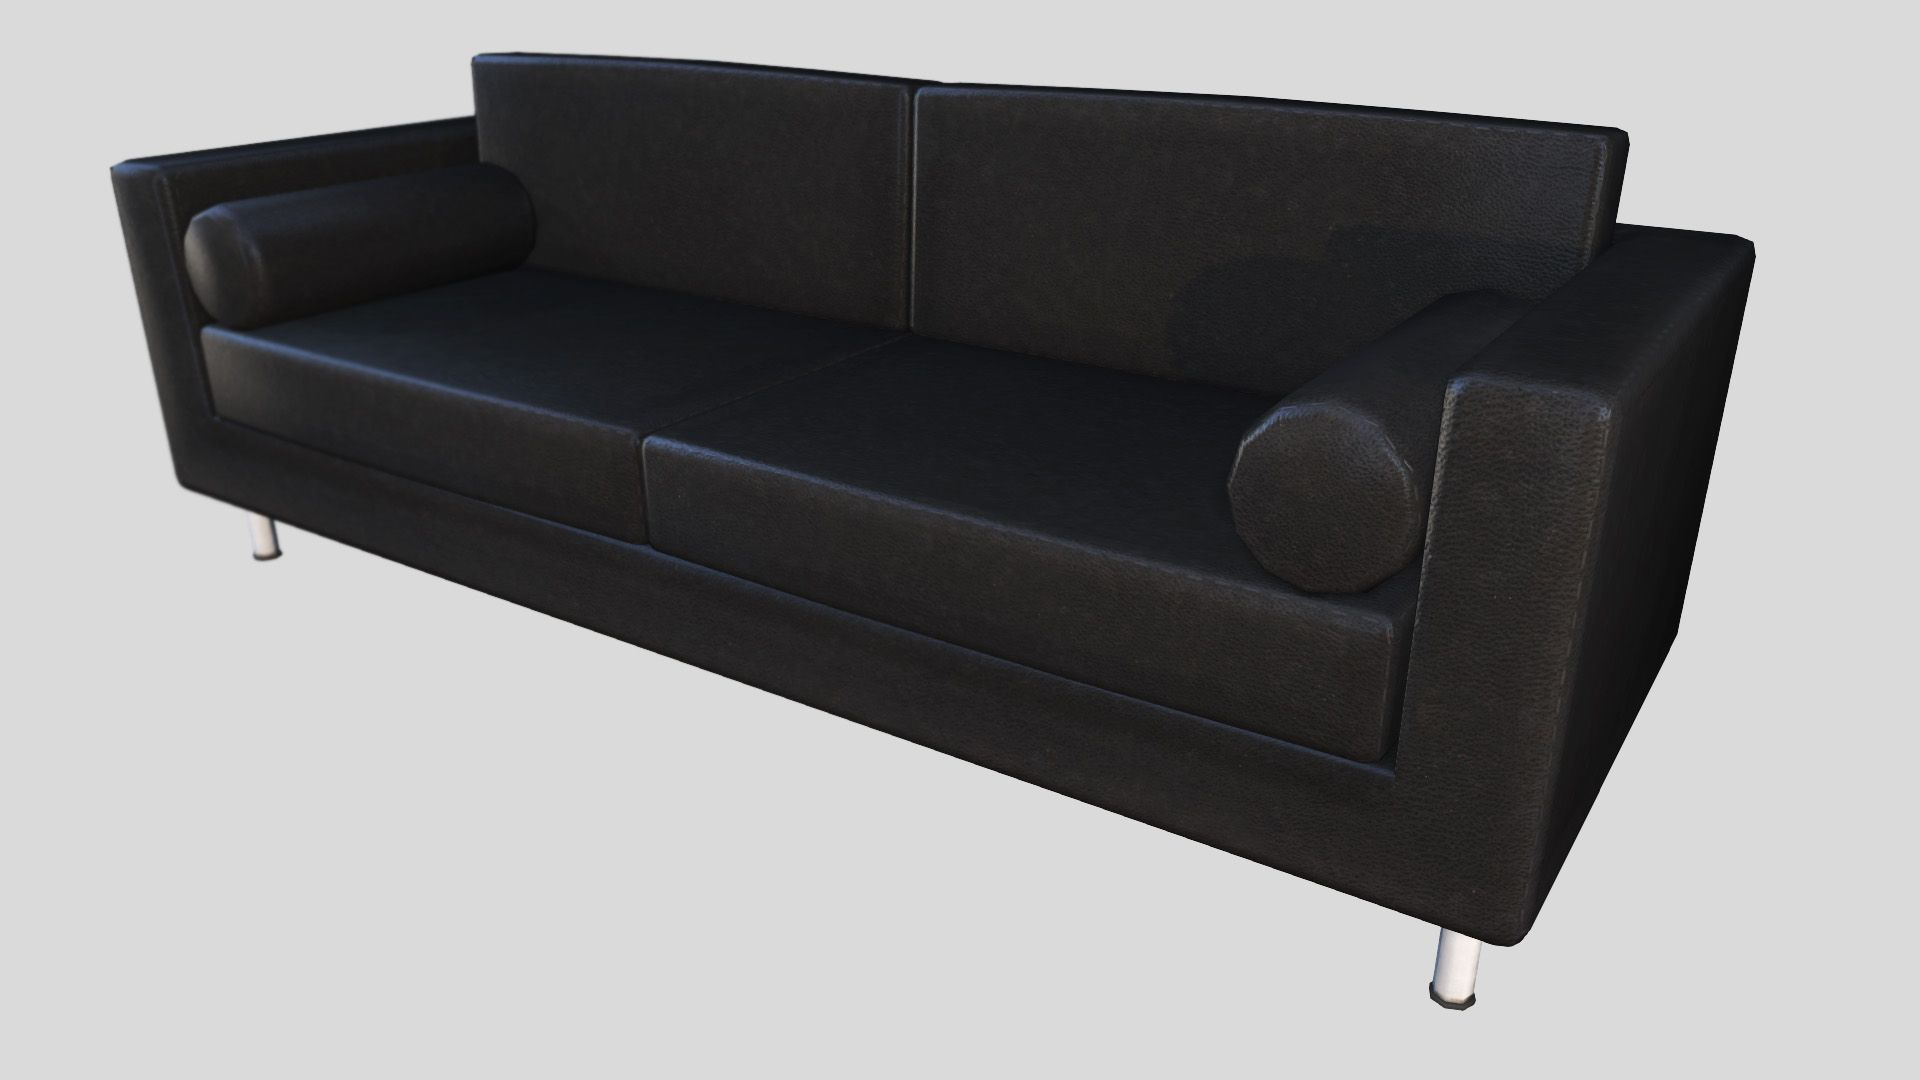 Black Leather Couch Black Leather Couch Leather Couch Couch Furniture